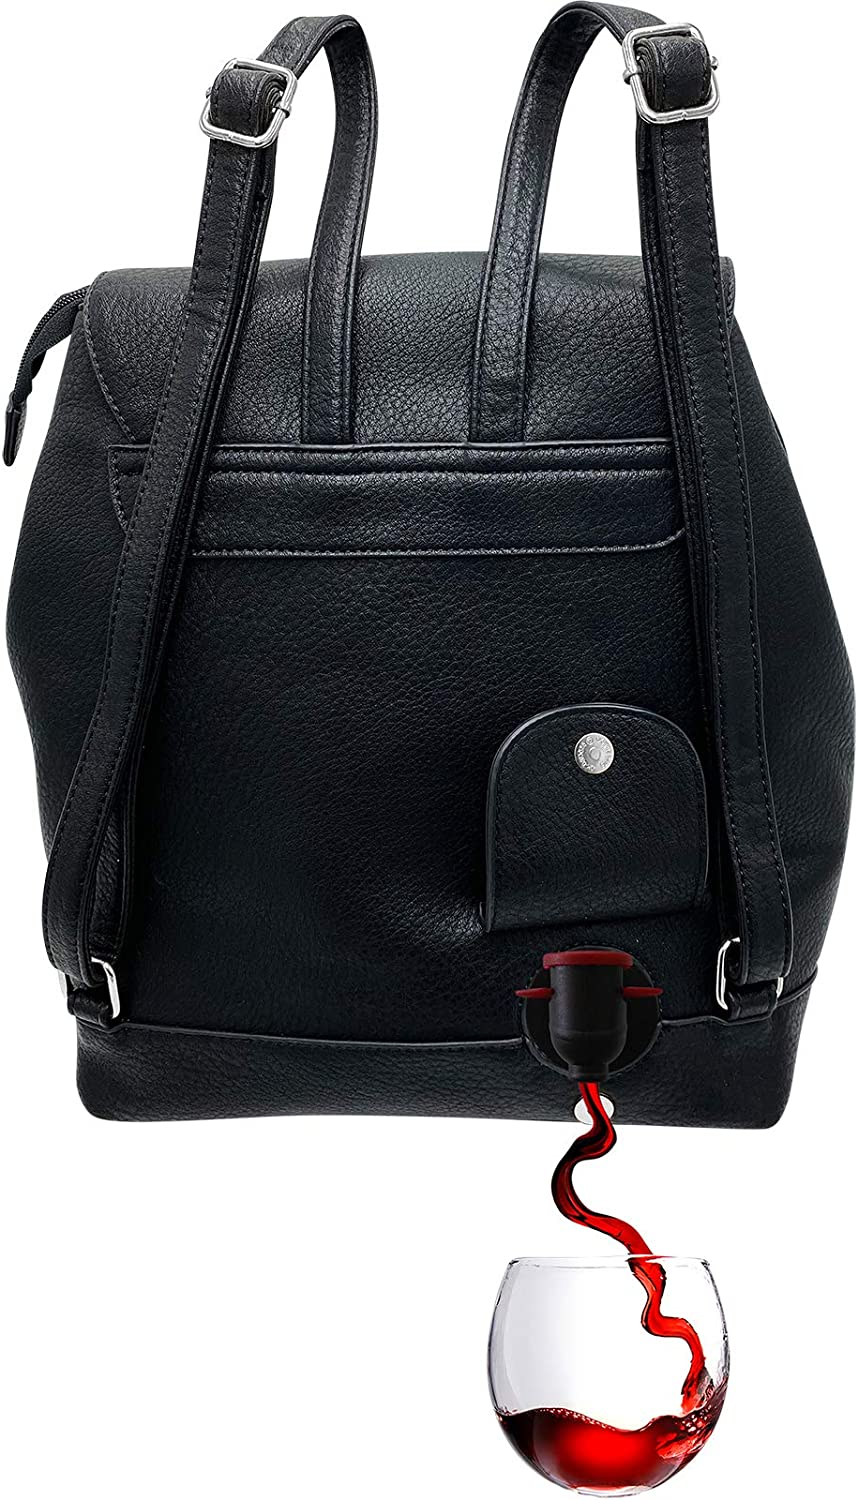 PortoVino Tokyo Backpack - Fashionable Wine Backpack with Hidden, Insulated Compartment, Holds 2 Bottles of Wine! / Great Gift! / Happiness Guaranteed!